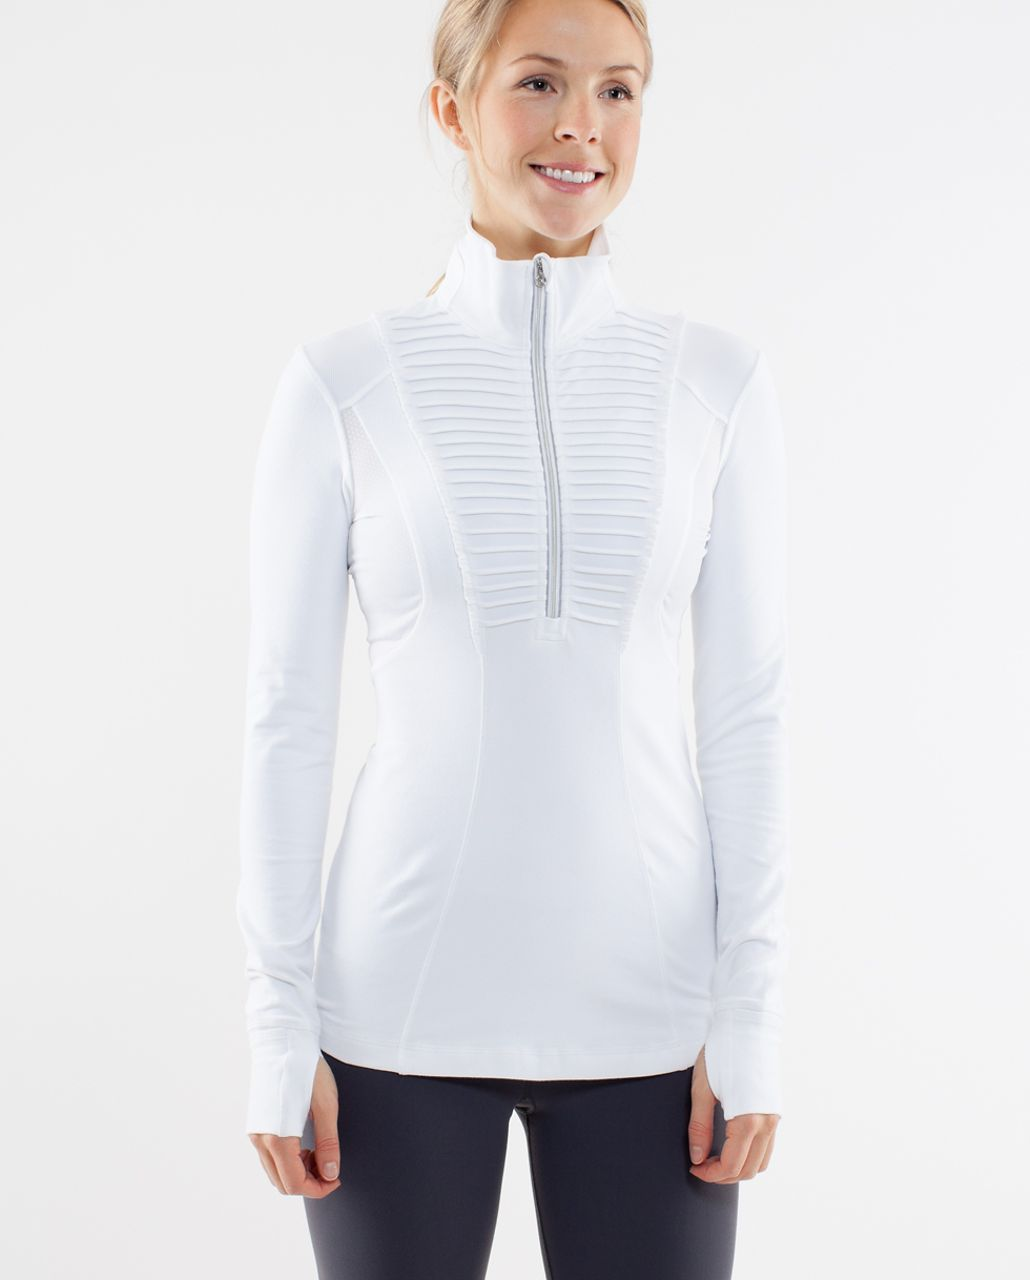 Lululemon Run:  Your Heart Out Pullover - White